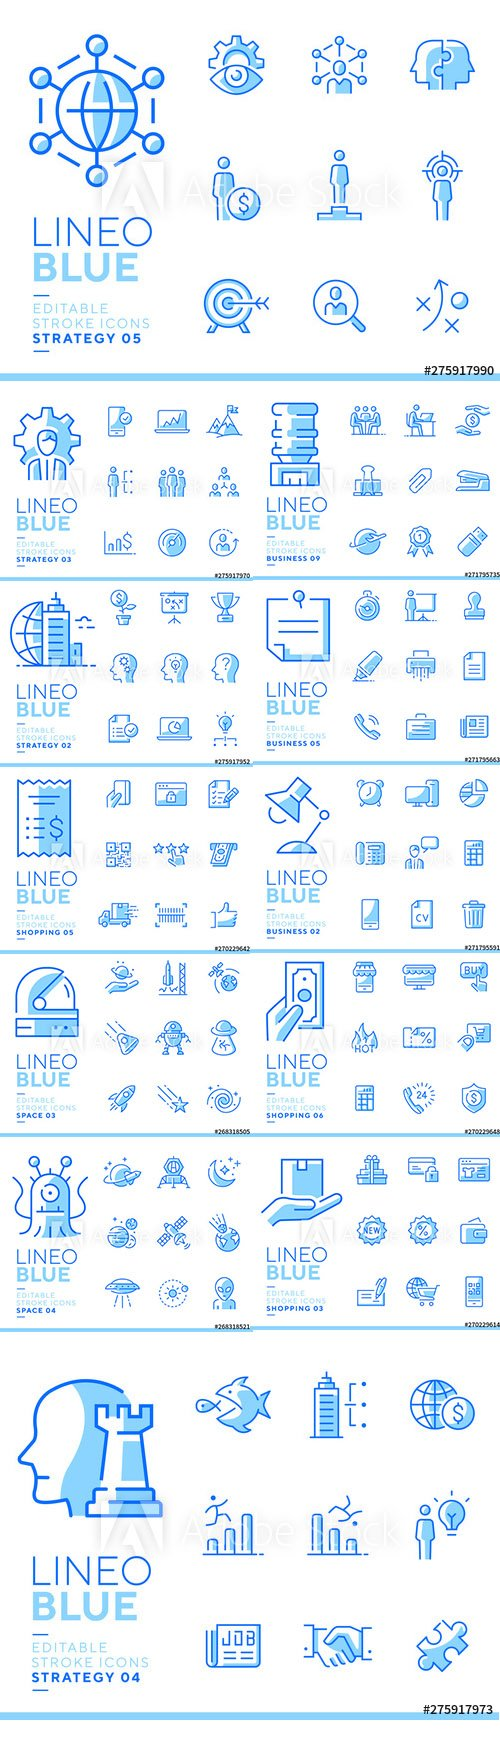 Lineo Blue - Line Icons Vector Pack